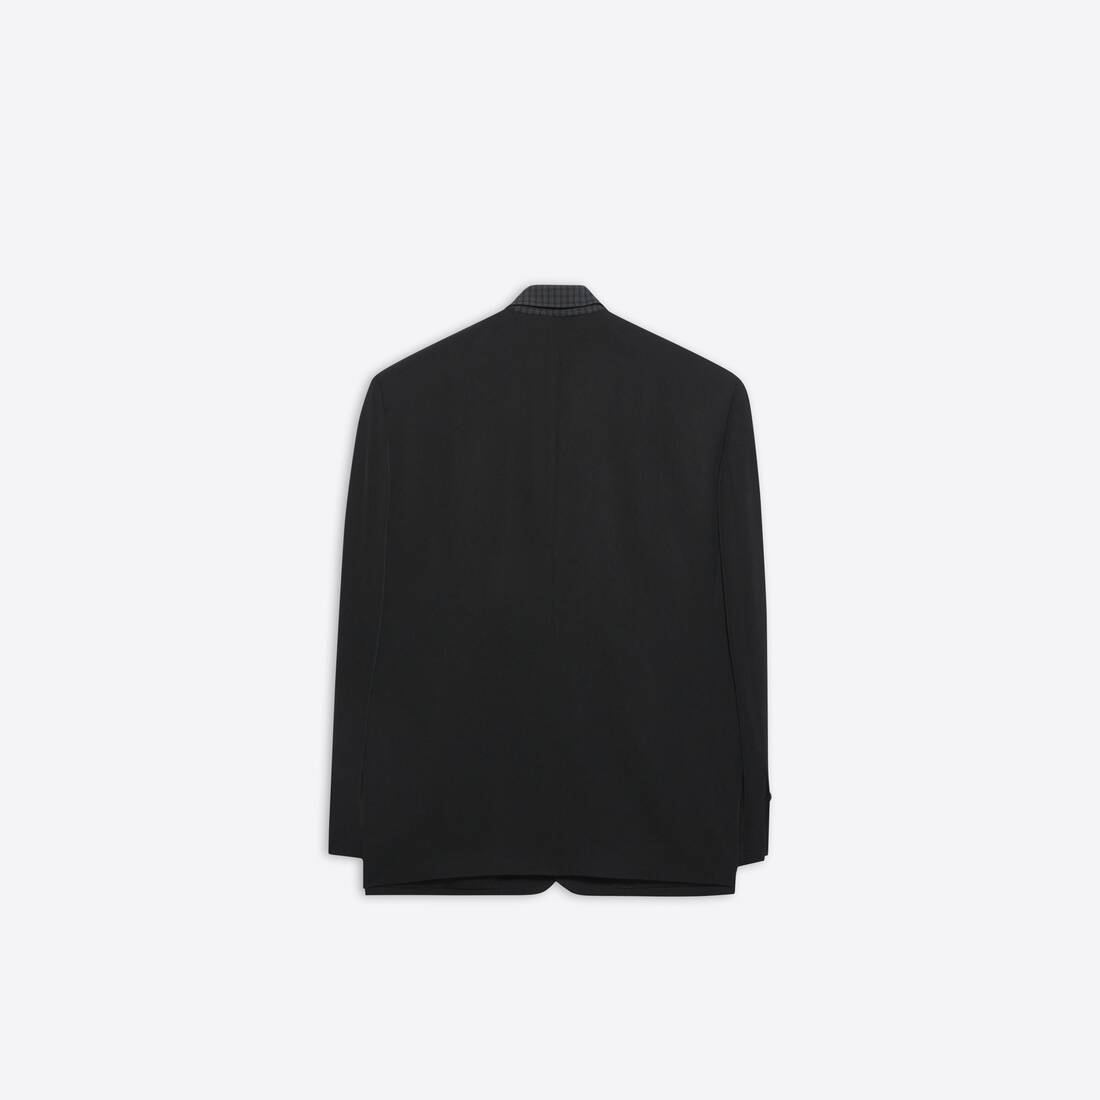 Display zoomed version of tailored shirt jacket 2